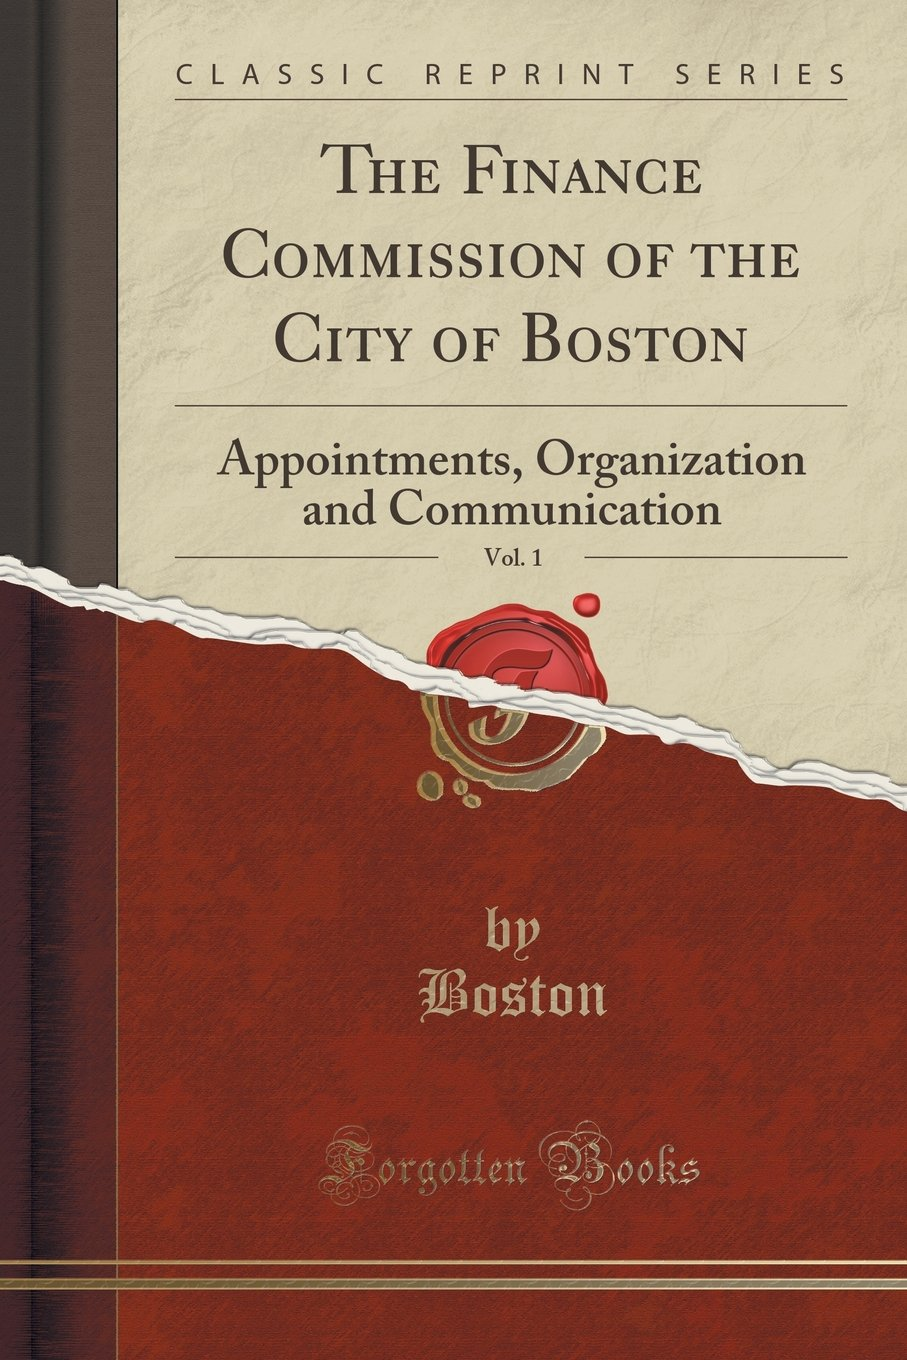 The Finance Commission of the City of Boston, Vol. 1: Appointments, Organization and Communication (Classic Reprint) PDF